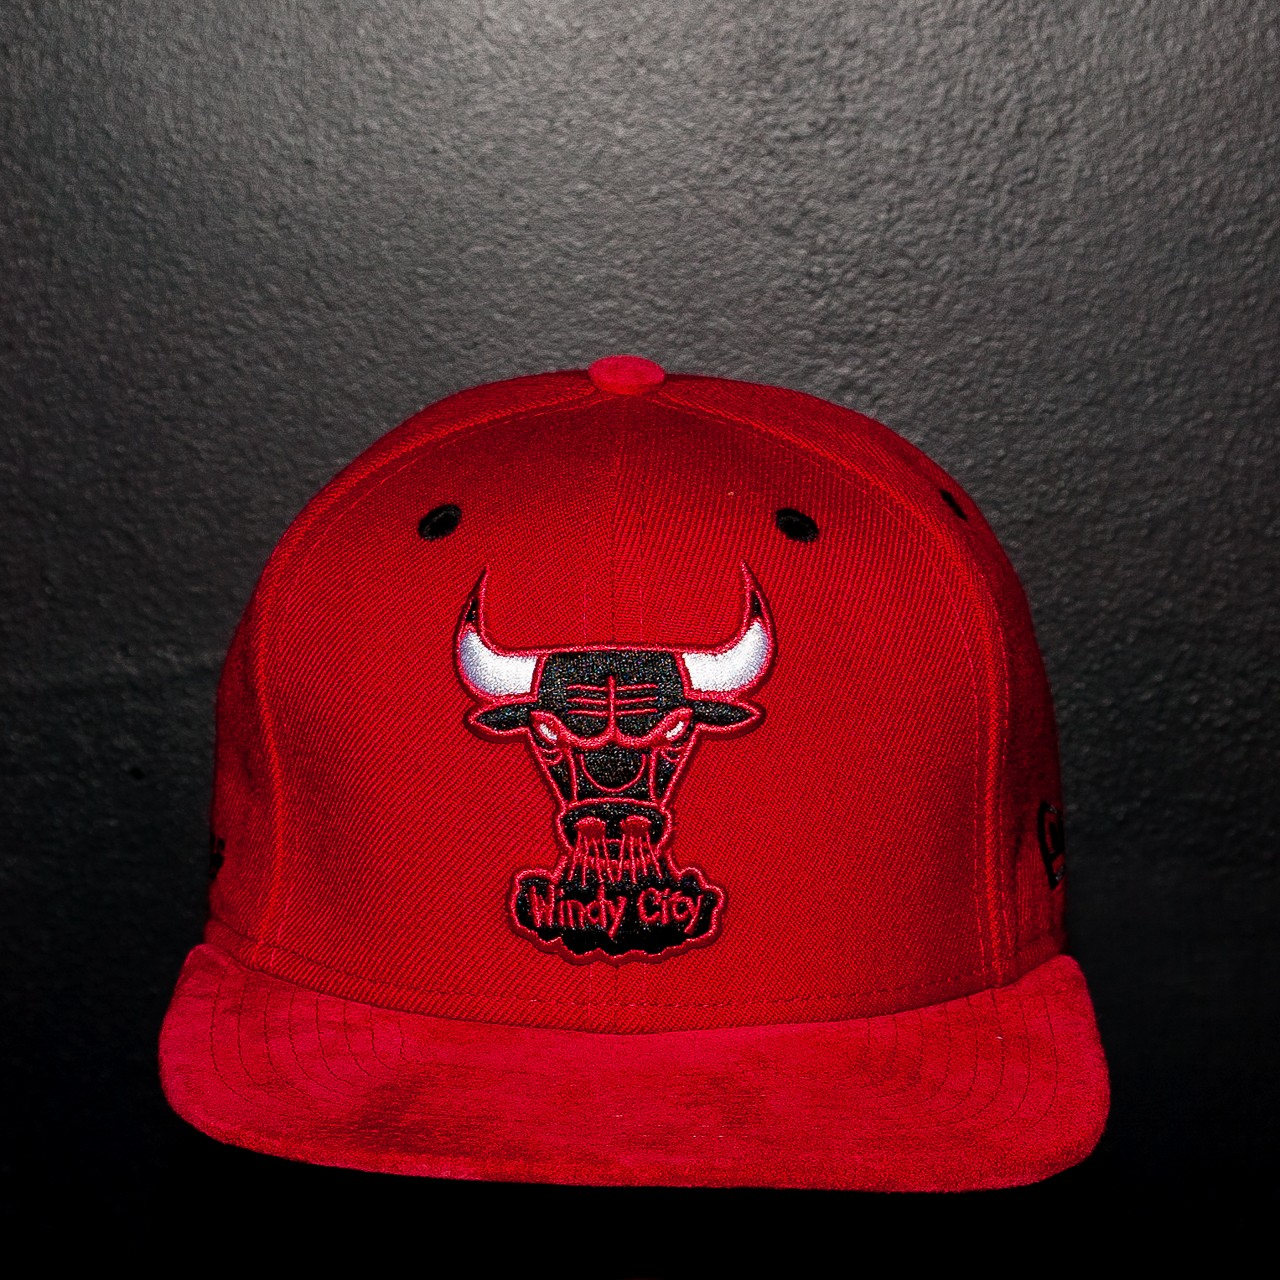 Chicago Bulls Suede Strap Back